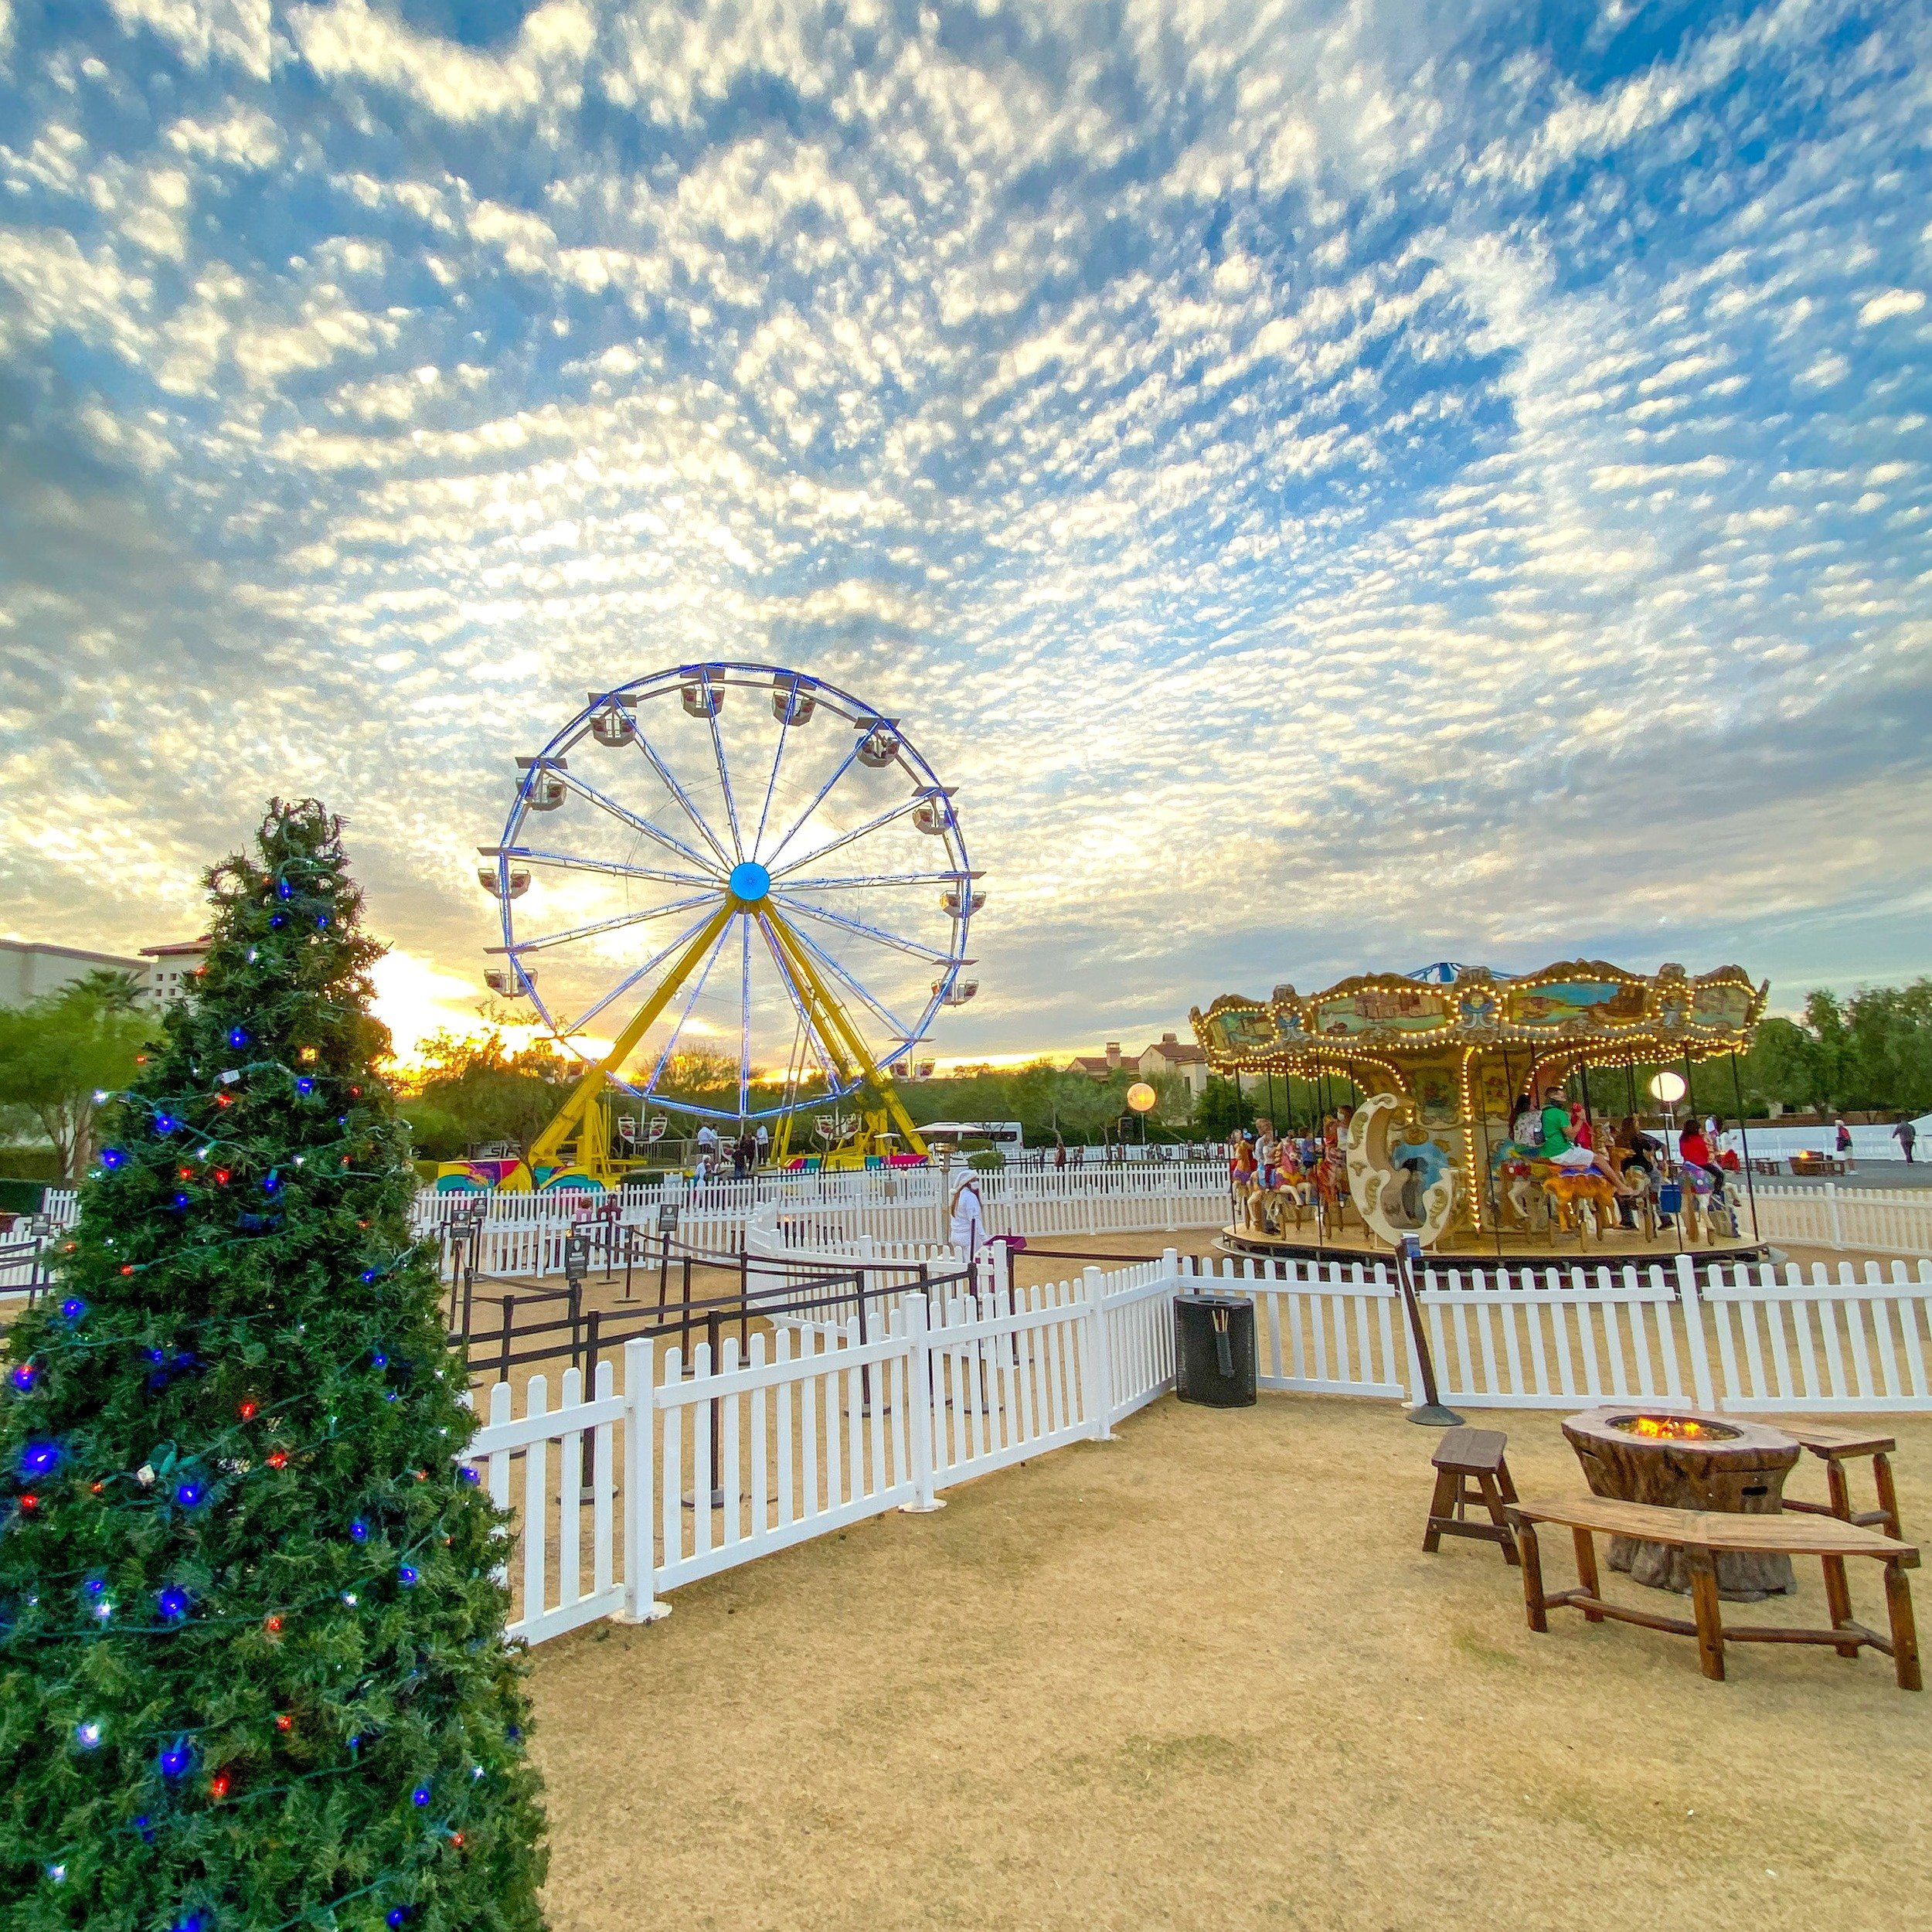 Frosty's Ferris Wheel, Christmas Carousel and one of many fire pits in S'moresland at Fairmont Scottsdale Princess